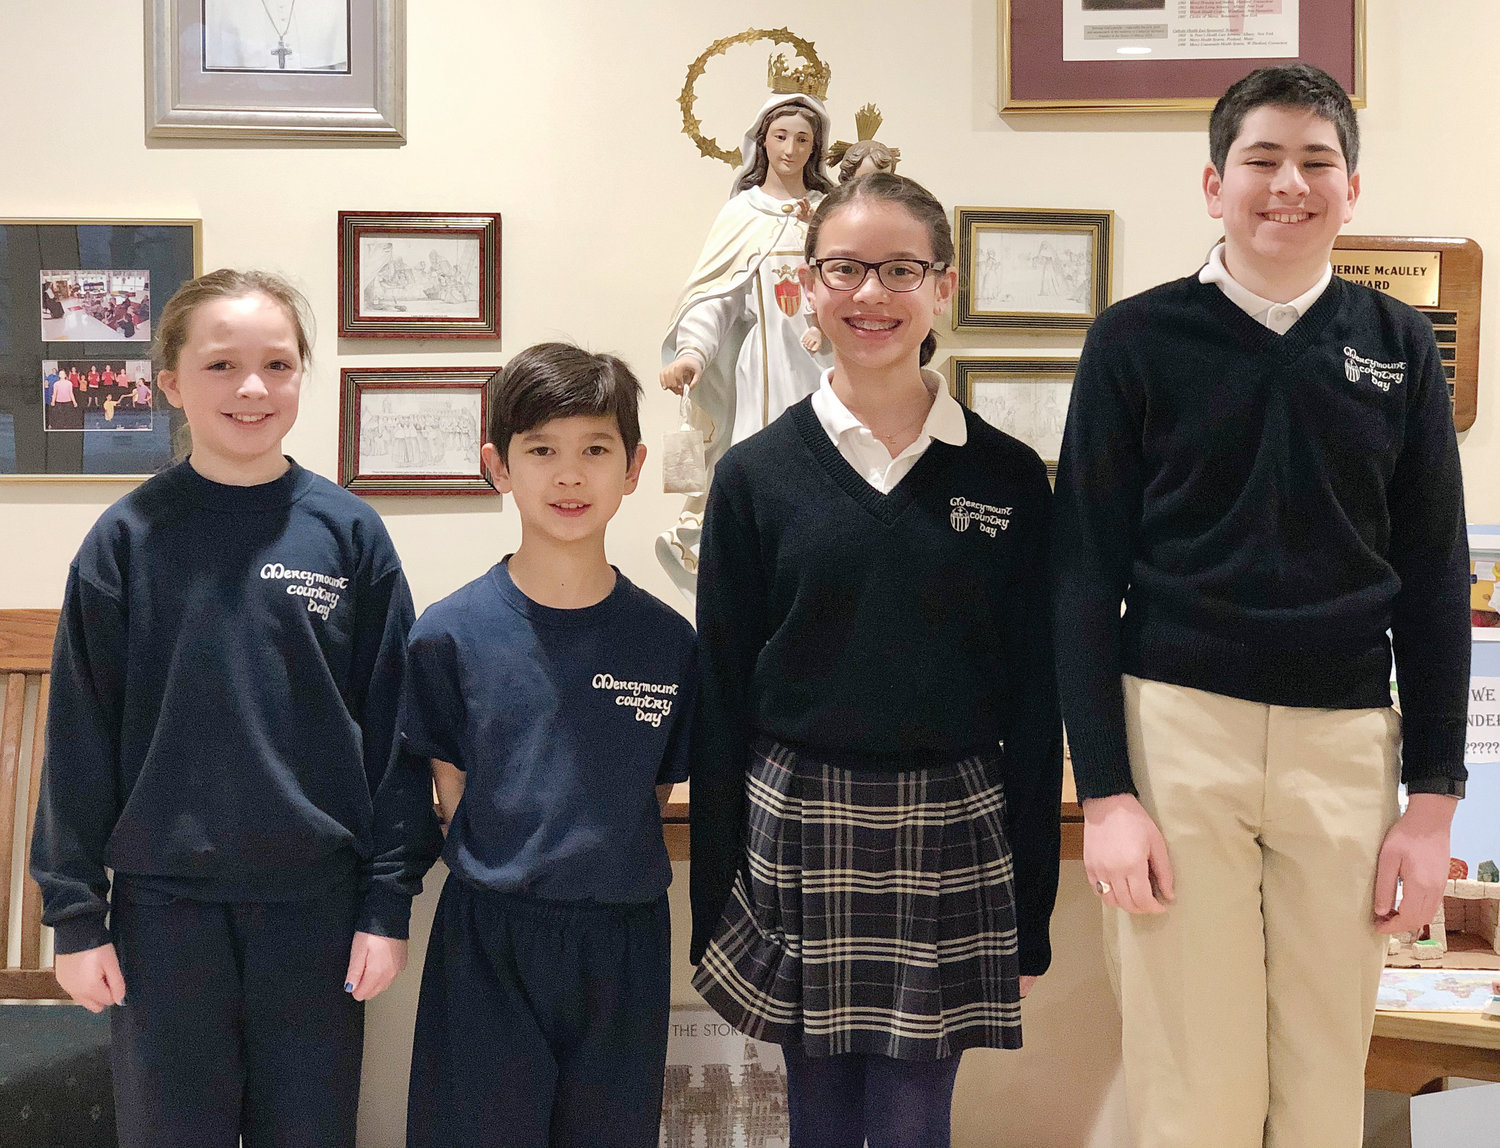 Mercymount Country Day School makes school history by having siblings win the school spelling bee. Leila and Jostan Sims took part in regionals. Fellow students Eva Matrullo and Alex Bove were also chosen as this year's alternates in the competition. Pictured from left, Eva Matrullo, Jostan Sims, Leila Sims and Alex Bove.